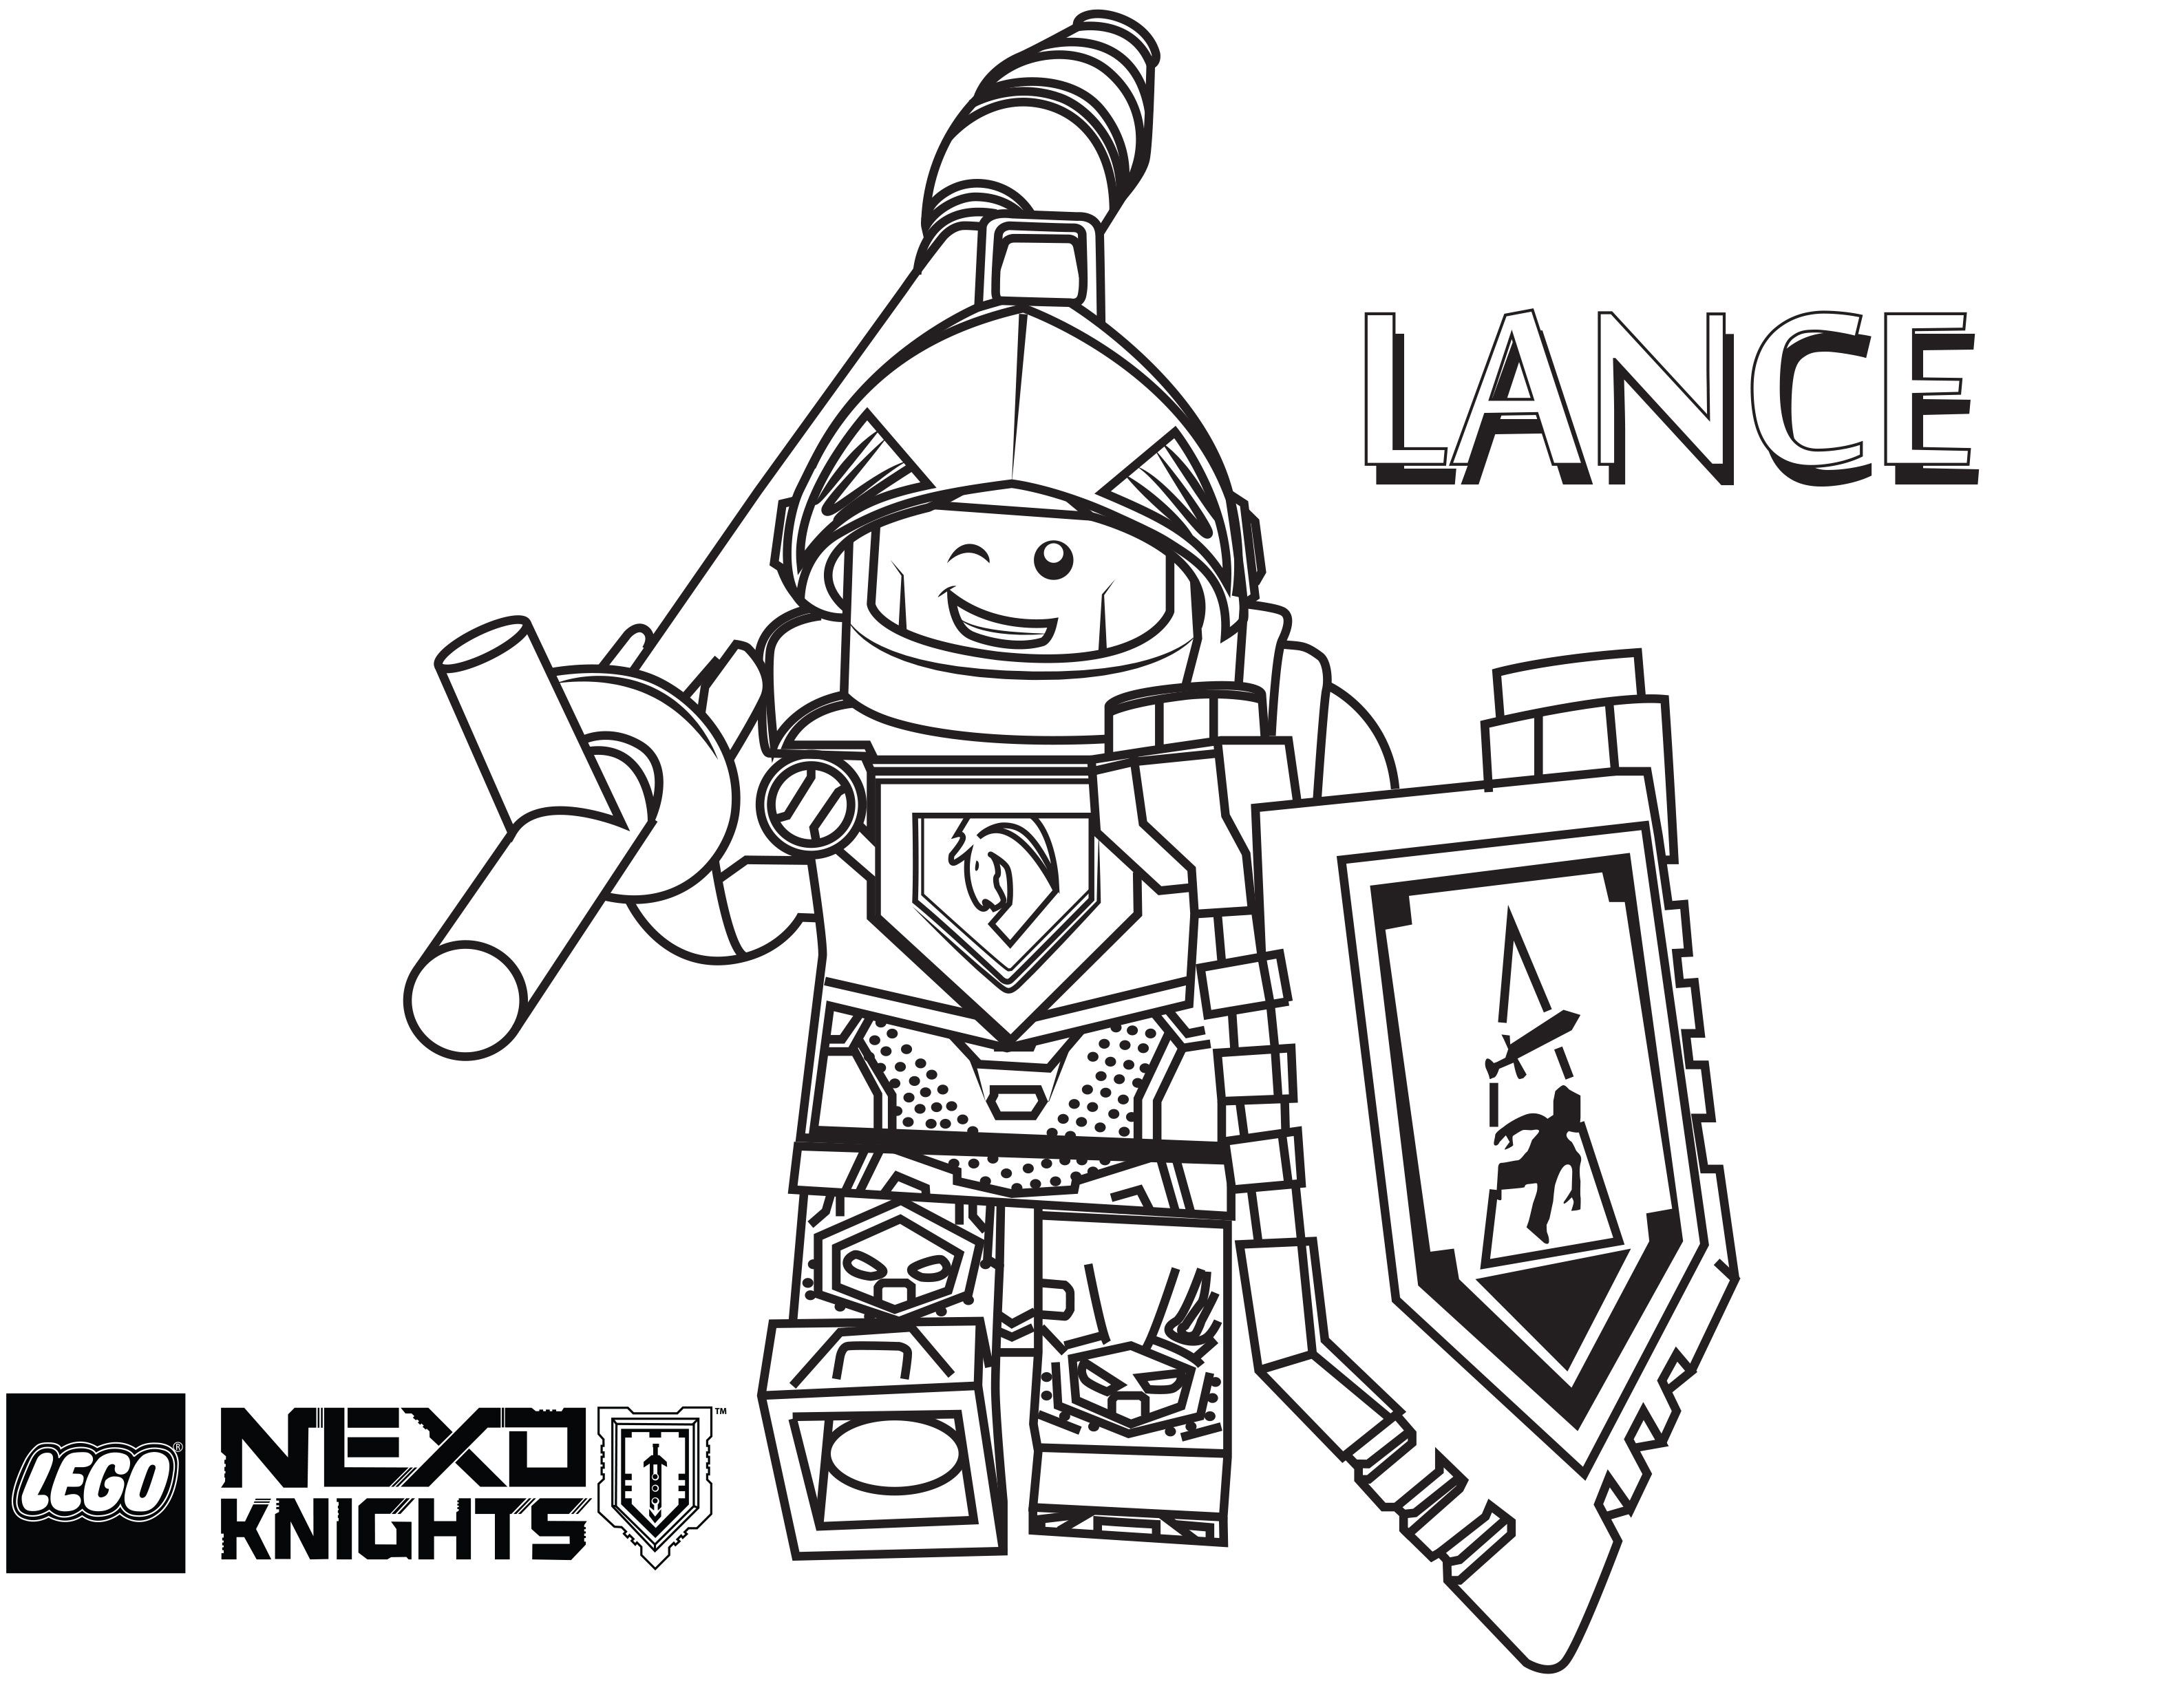 Lego Knight Coloring Pages - Coloring Home